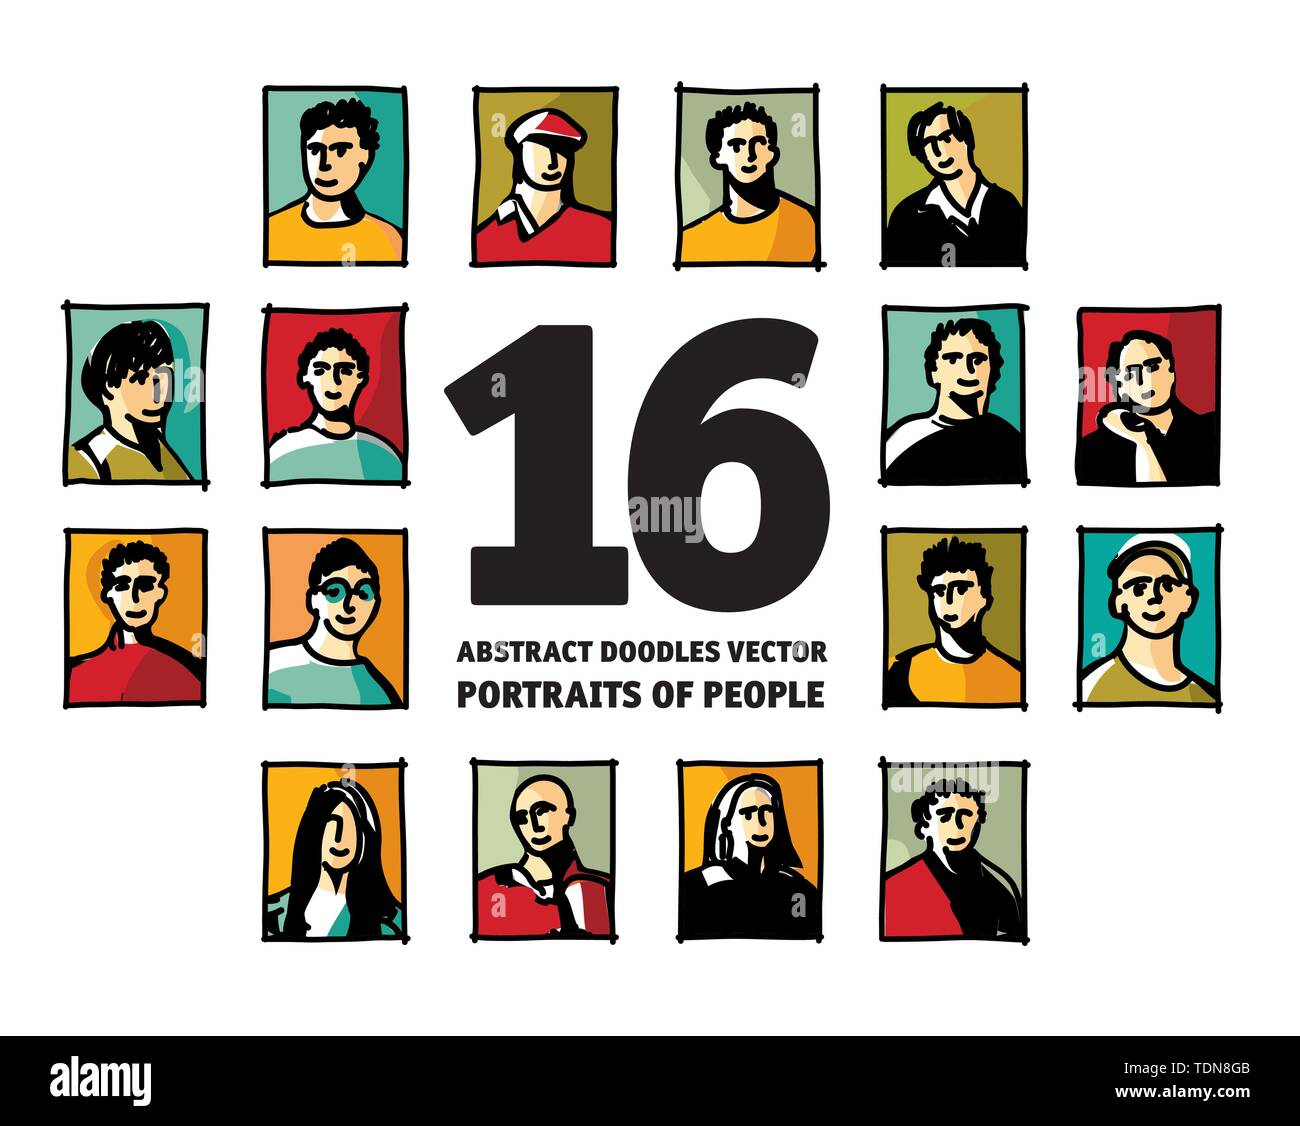 Doodles people portraits avatars abstract faces. Color vector illustration EPS8 - Stock Image